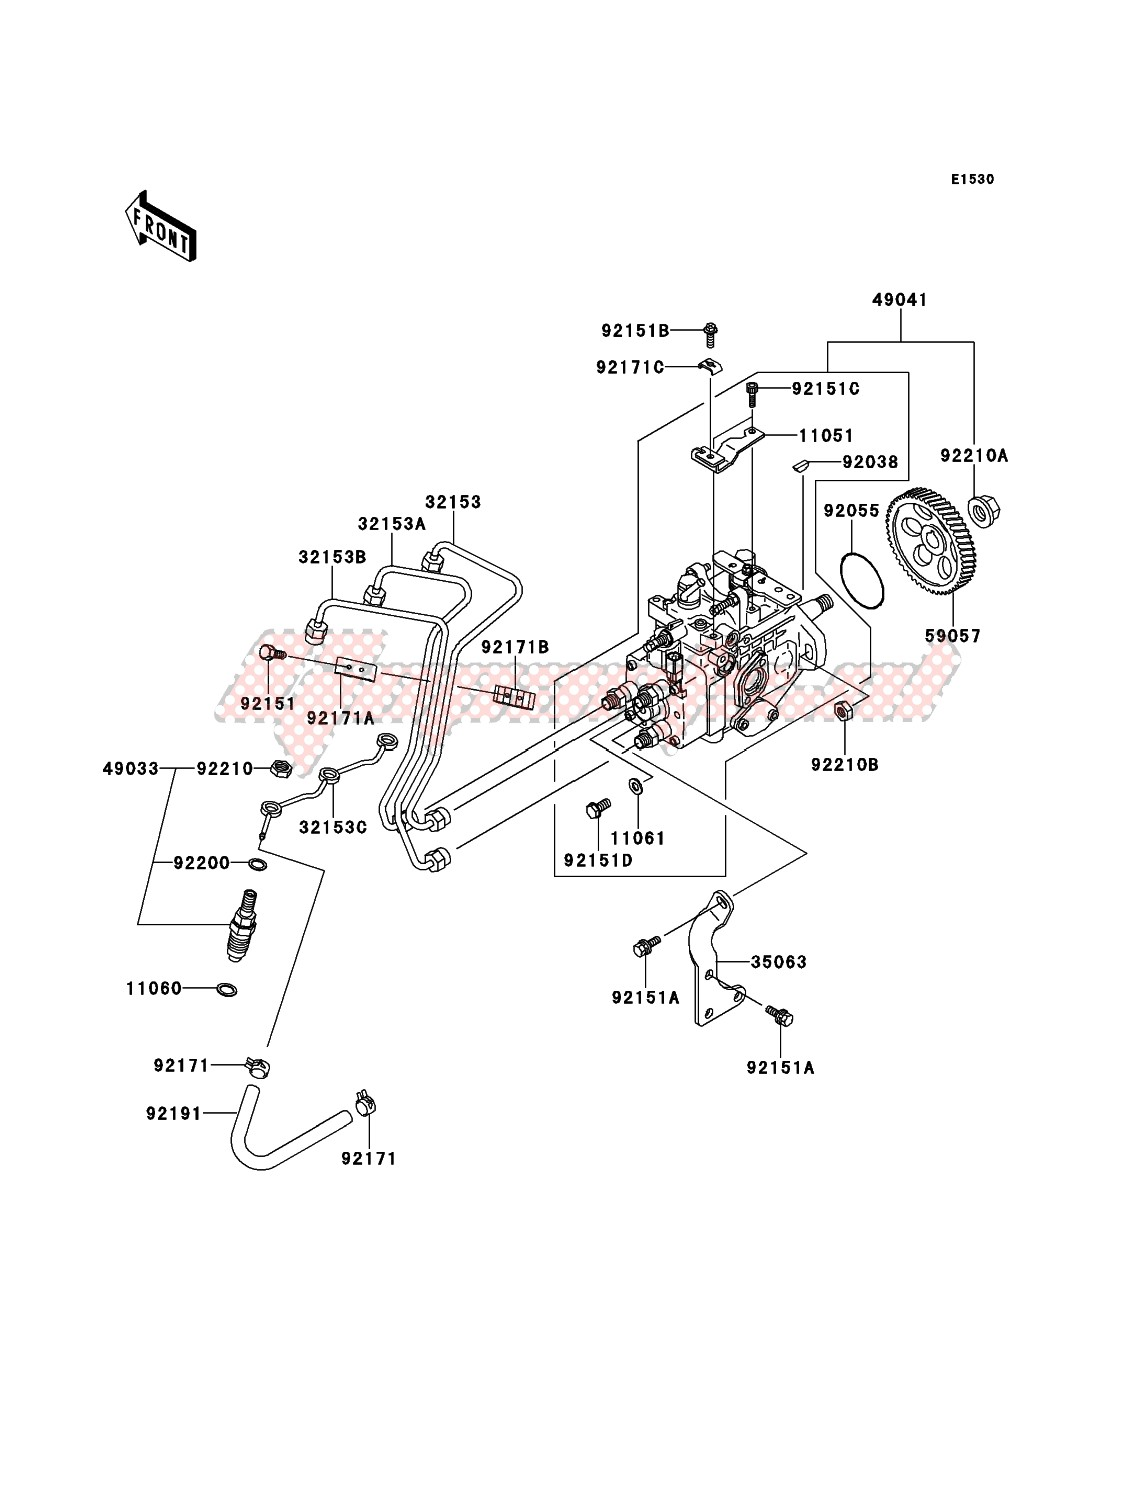 Engine-Fuel Injection